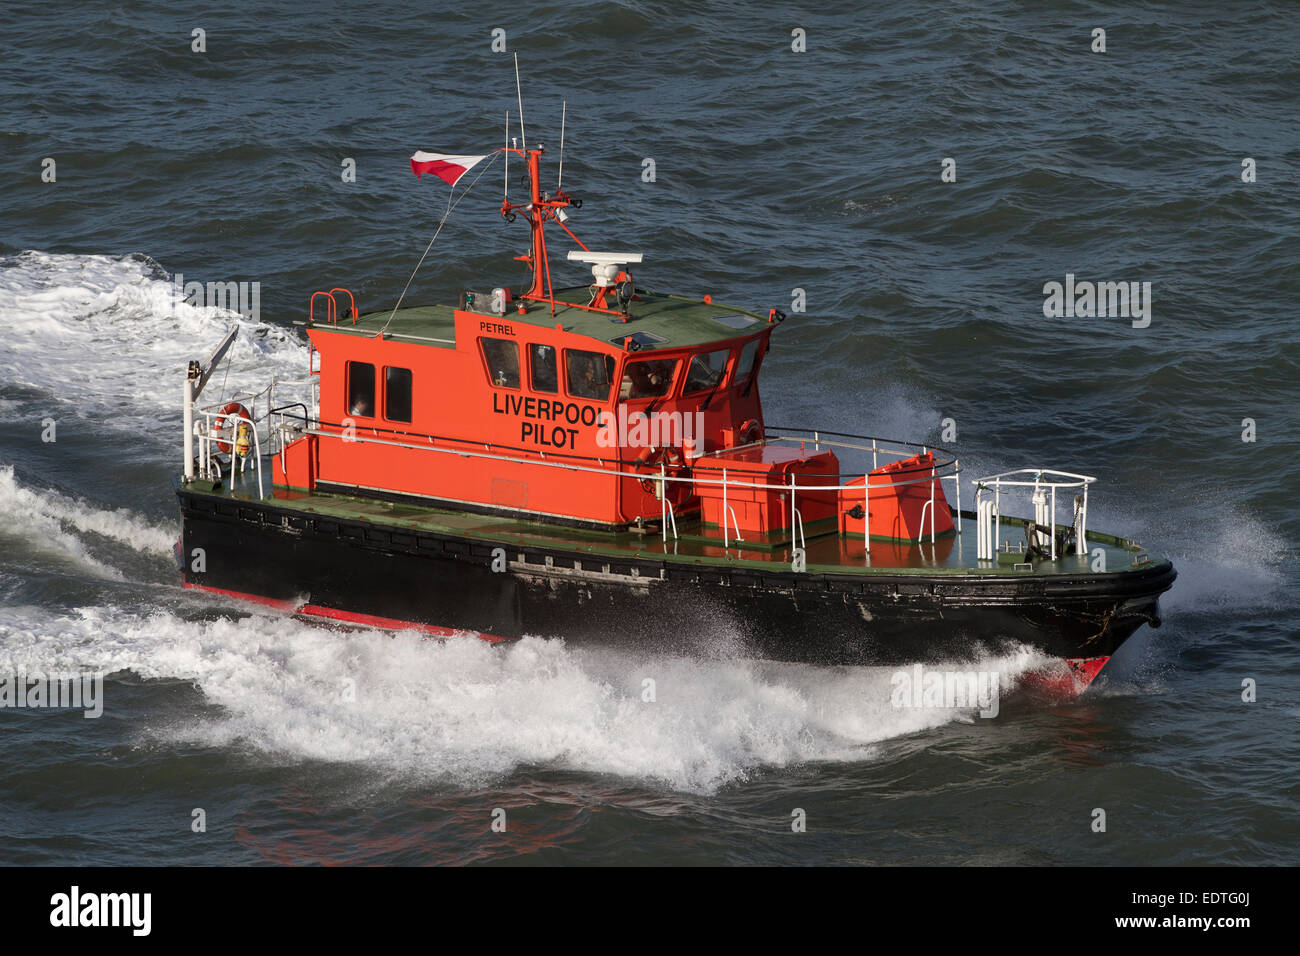 A pilot launch of the Liverpool Pilotage Service Ltd working in the river Mersey, England, UK. - Stock Image